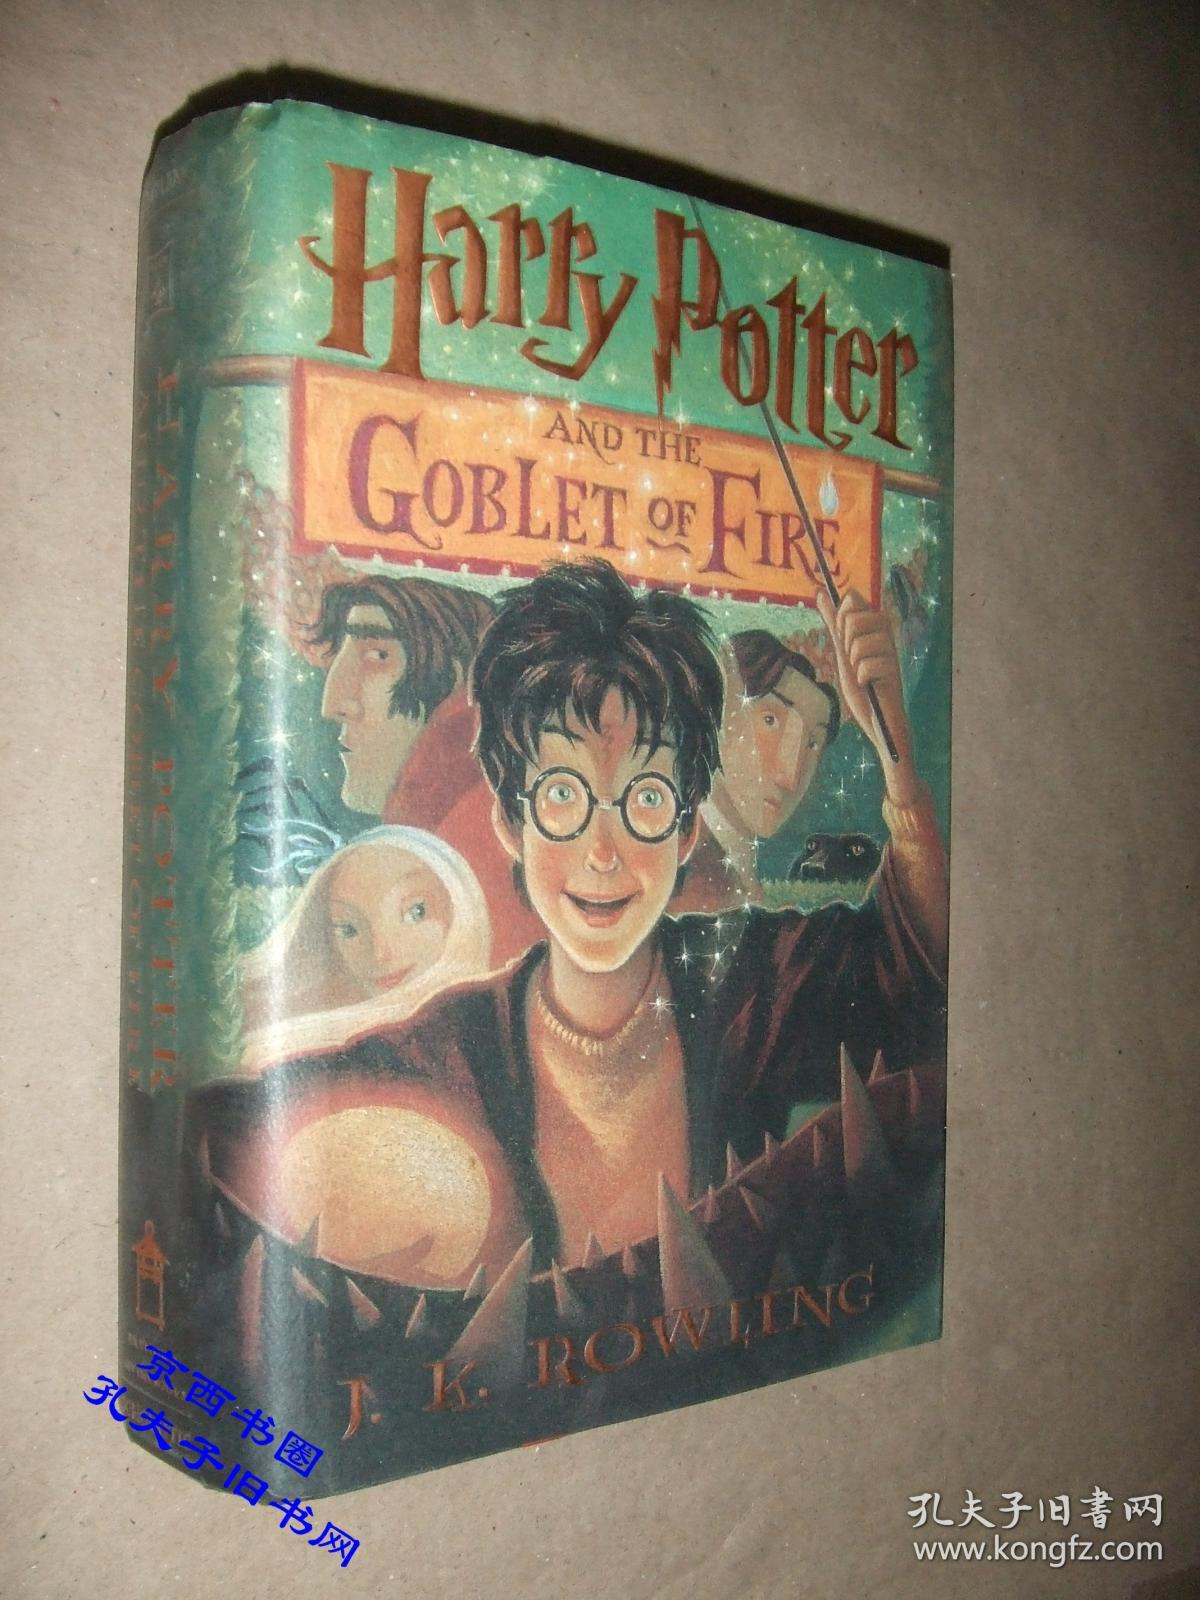 (英文版):哈利·波特与火焰杯 Harry Potter and the Goblet of Fire